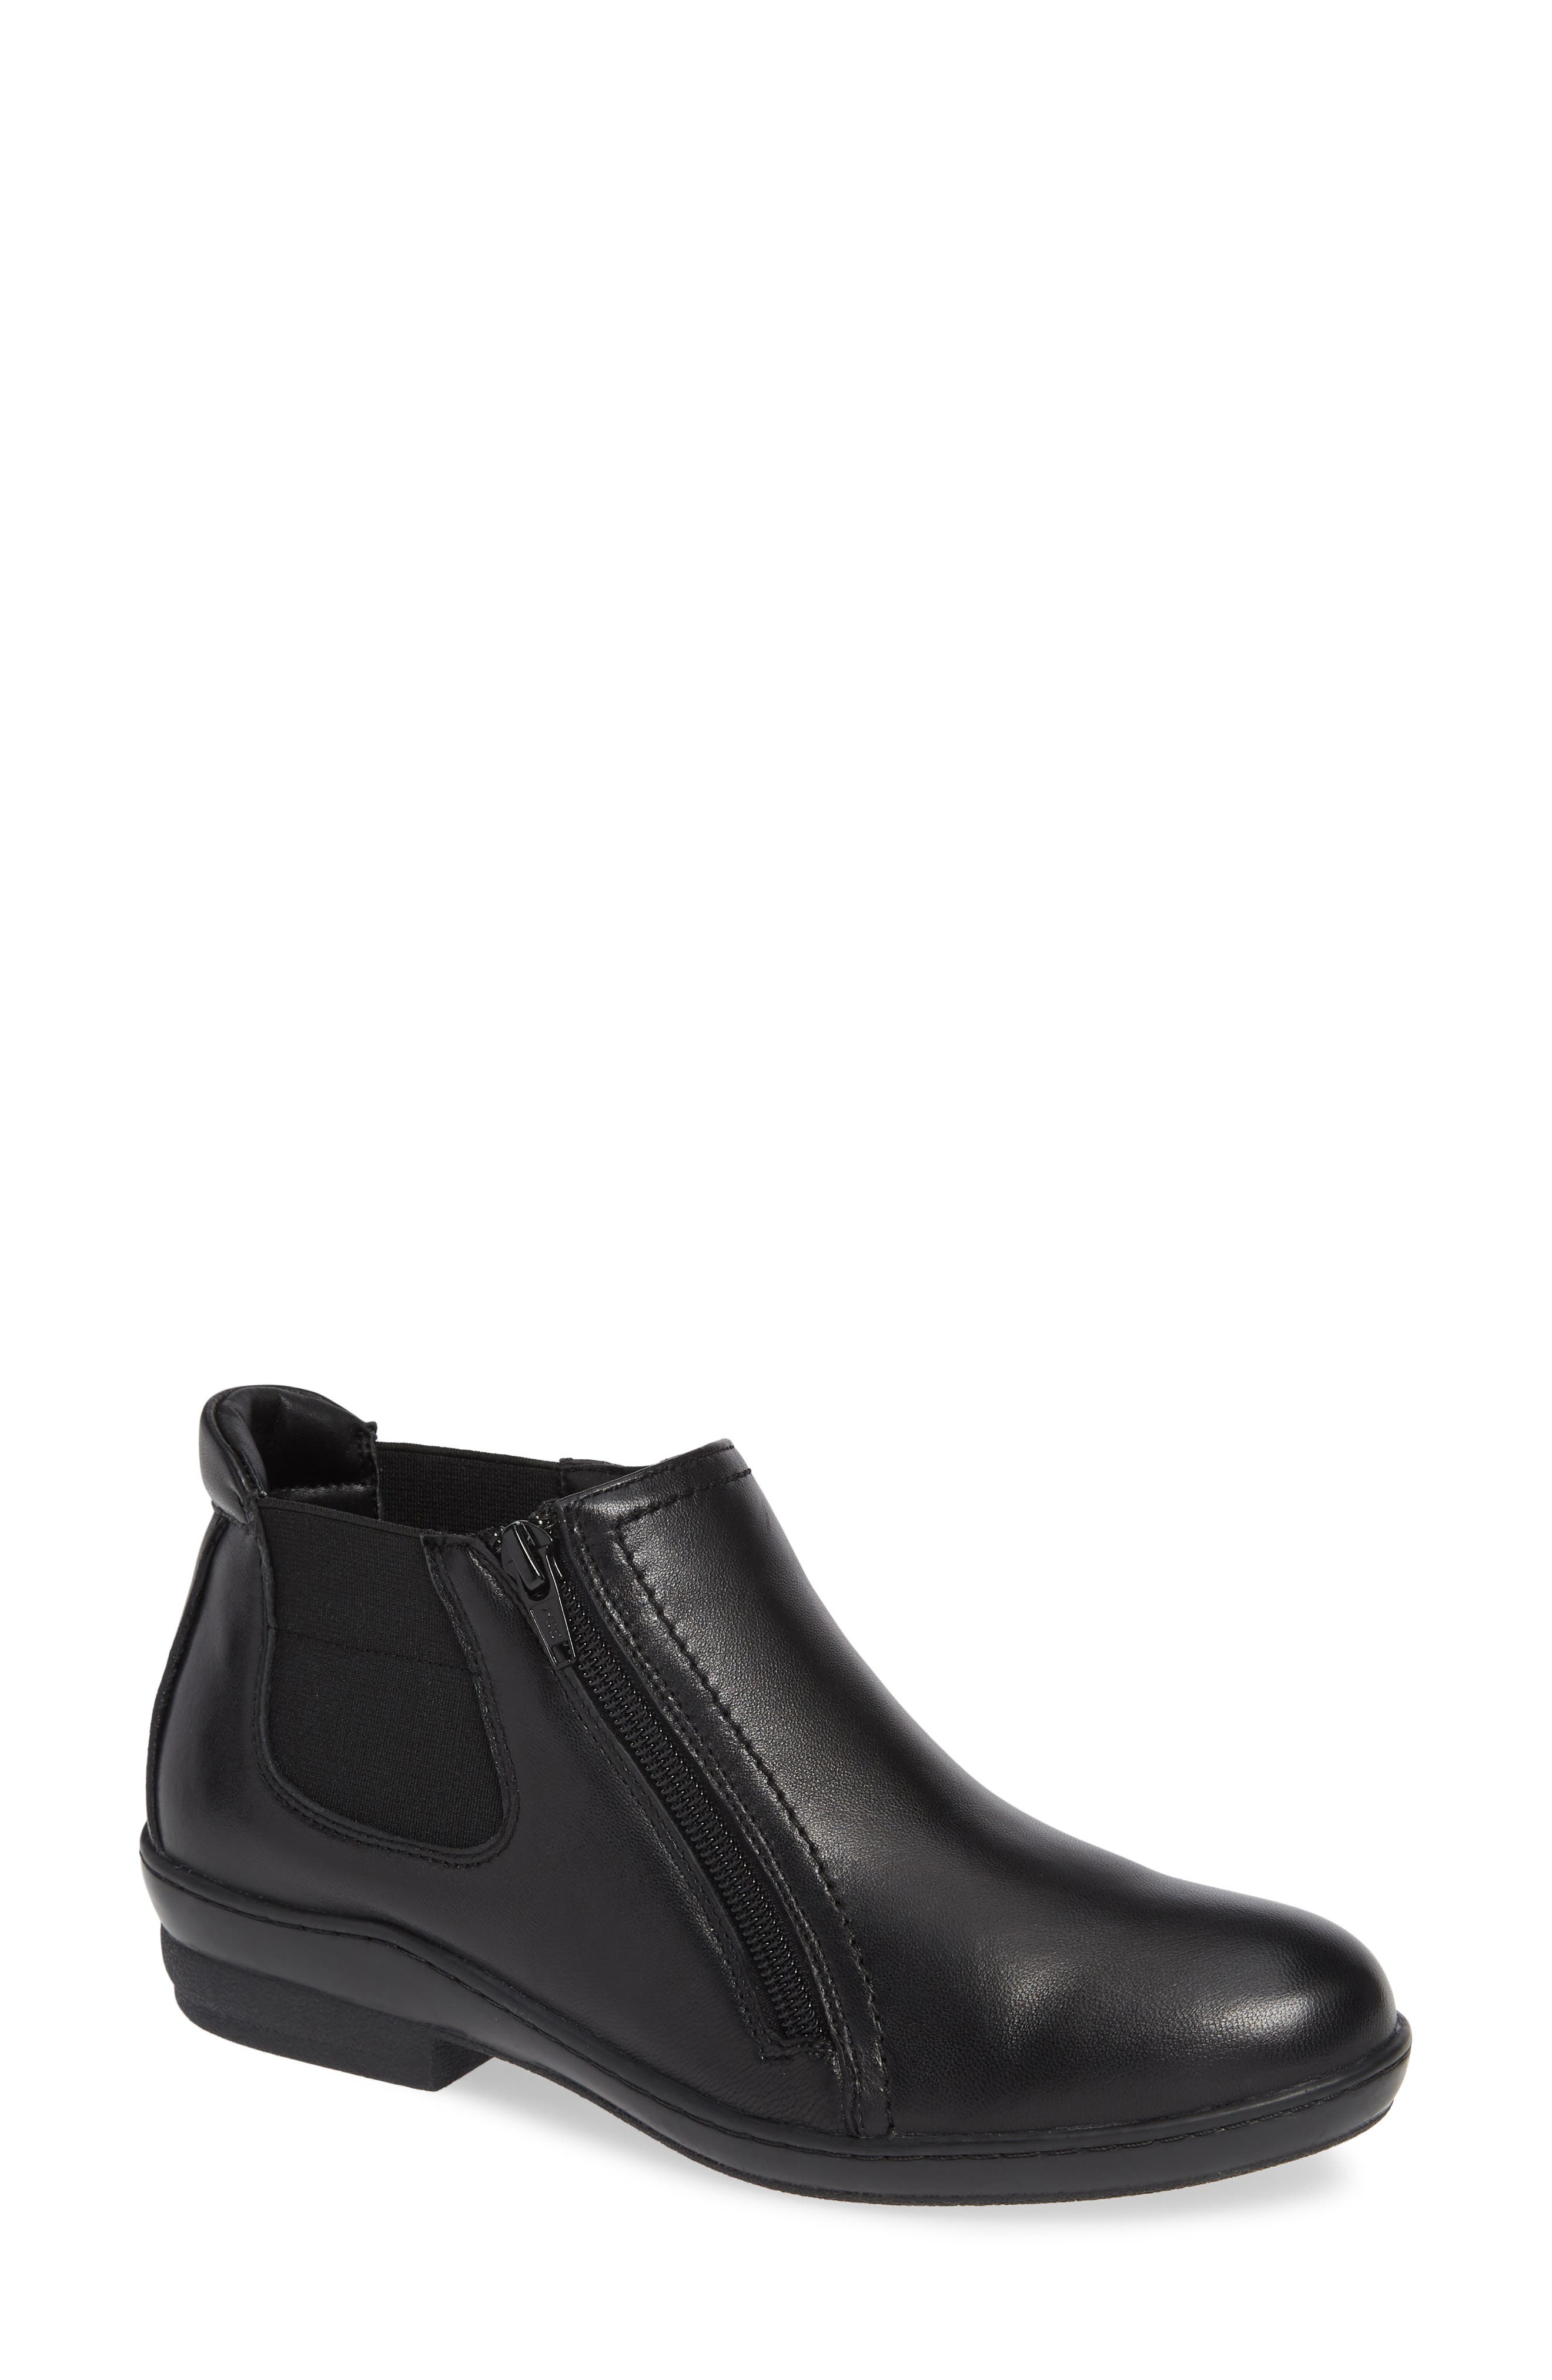 David Tate Bristol Bootie, Black